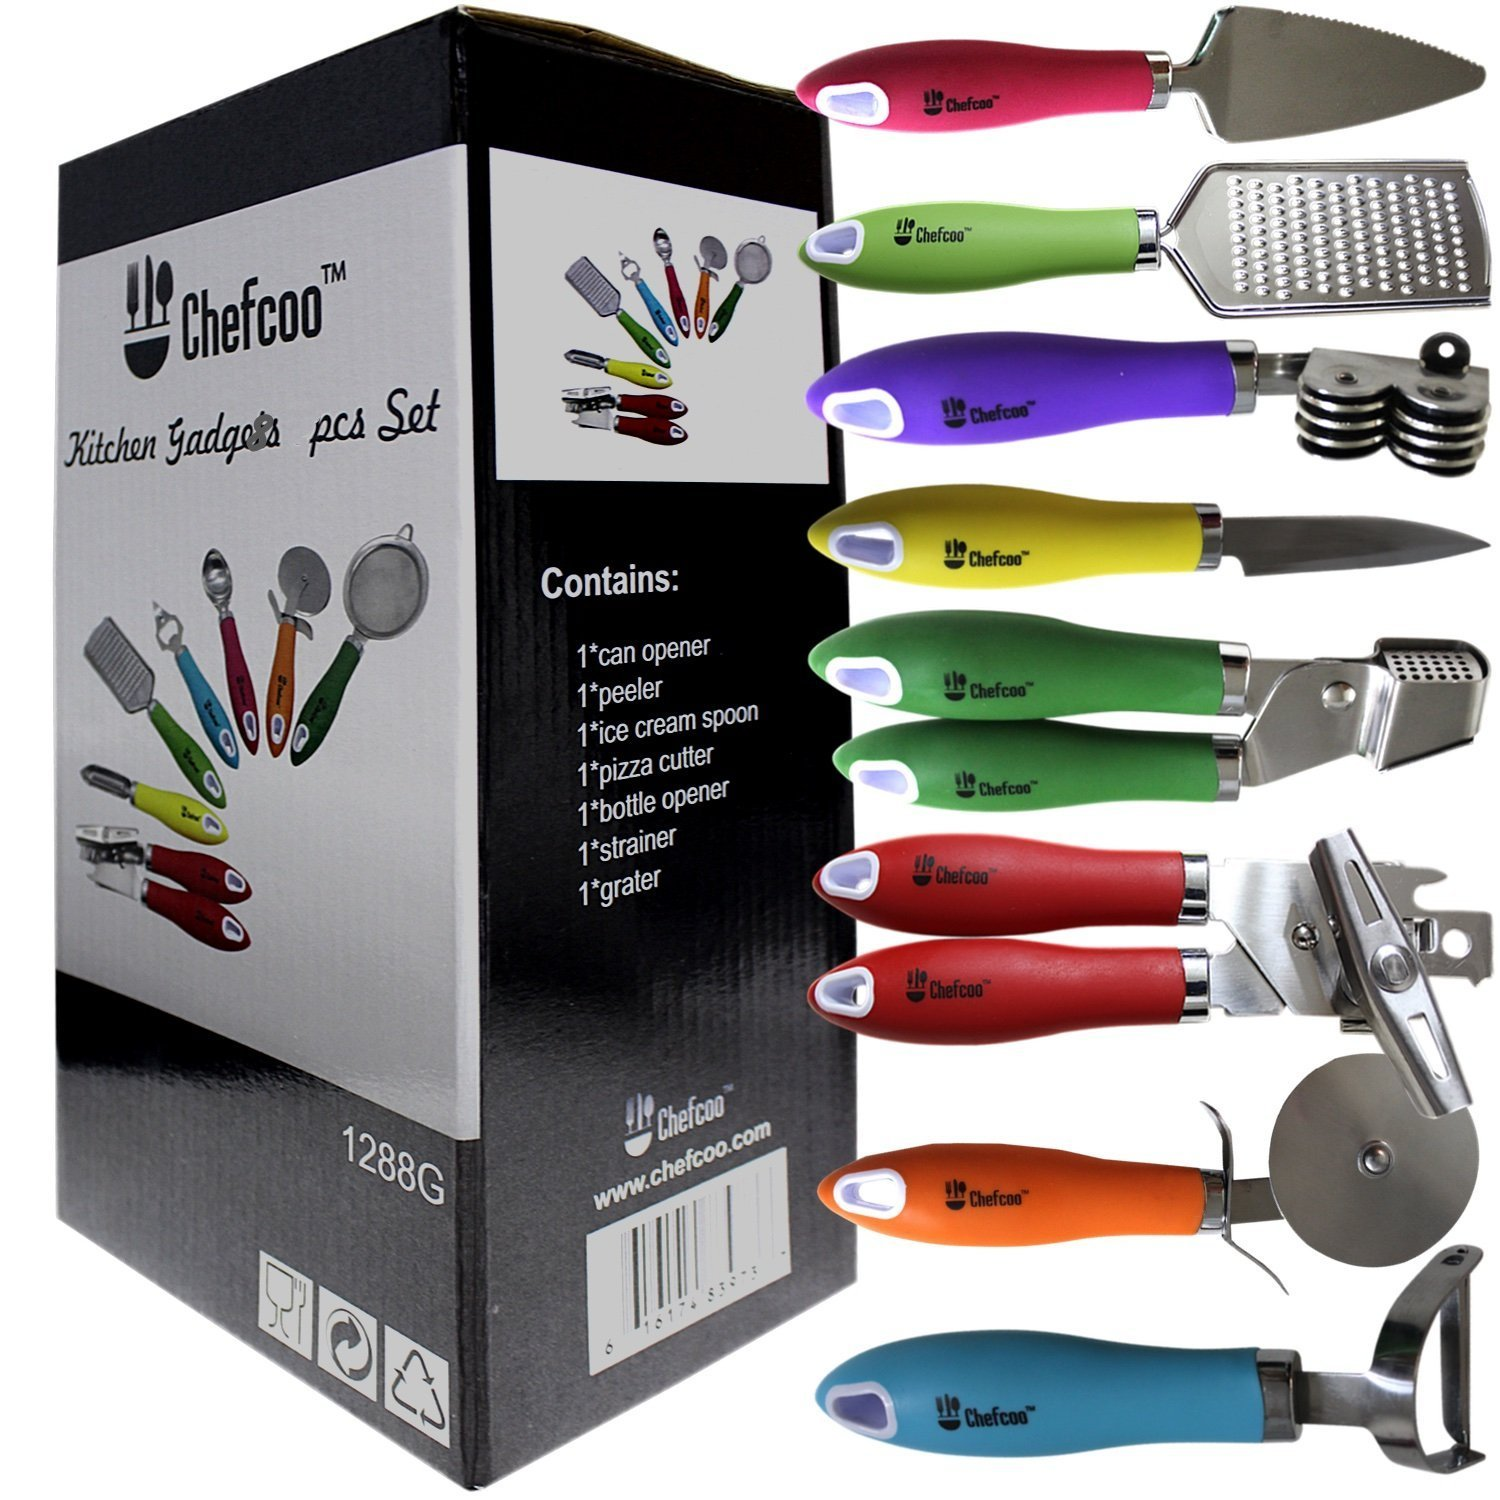 "8 Pieces Kitchen Gadget Tools Set by Chefcooâ""¢ - Stainless-Steel Utensils Chef Cooking Set - Peeler, Knife, Pie Server, Can Opener, Pizza Cutter, Grater, Knife Sharpener & Garlic Press"